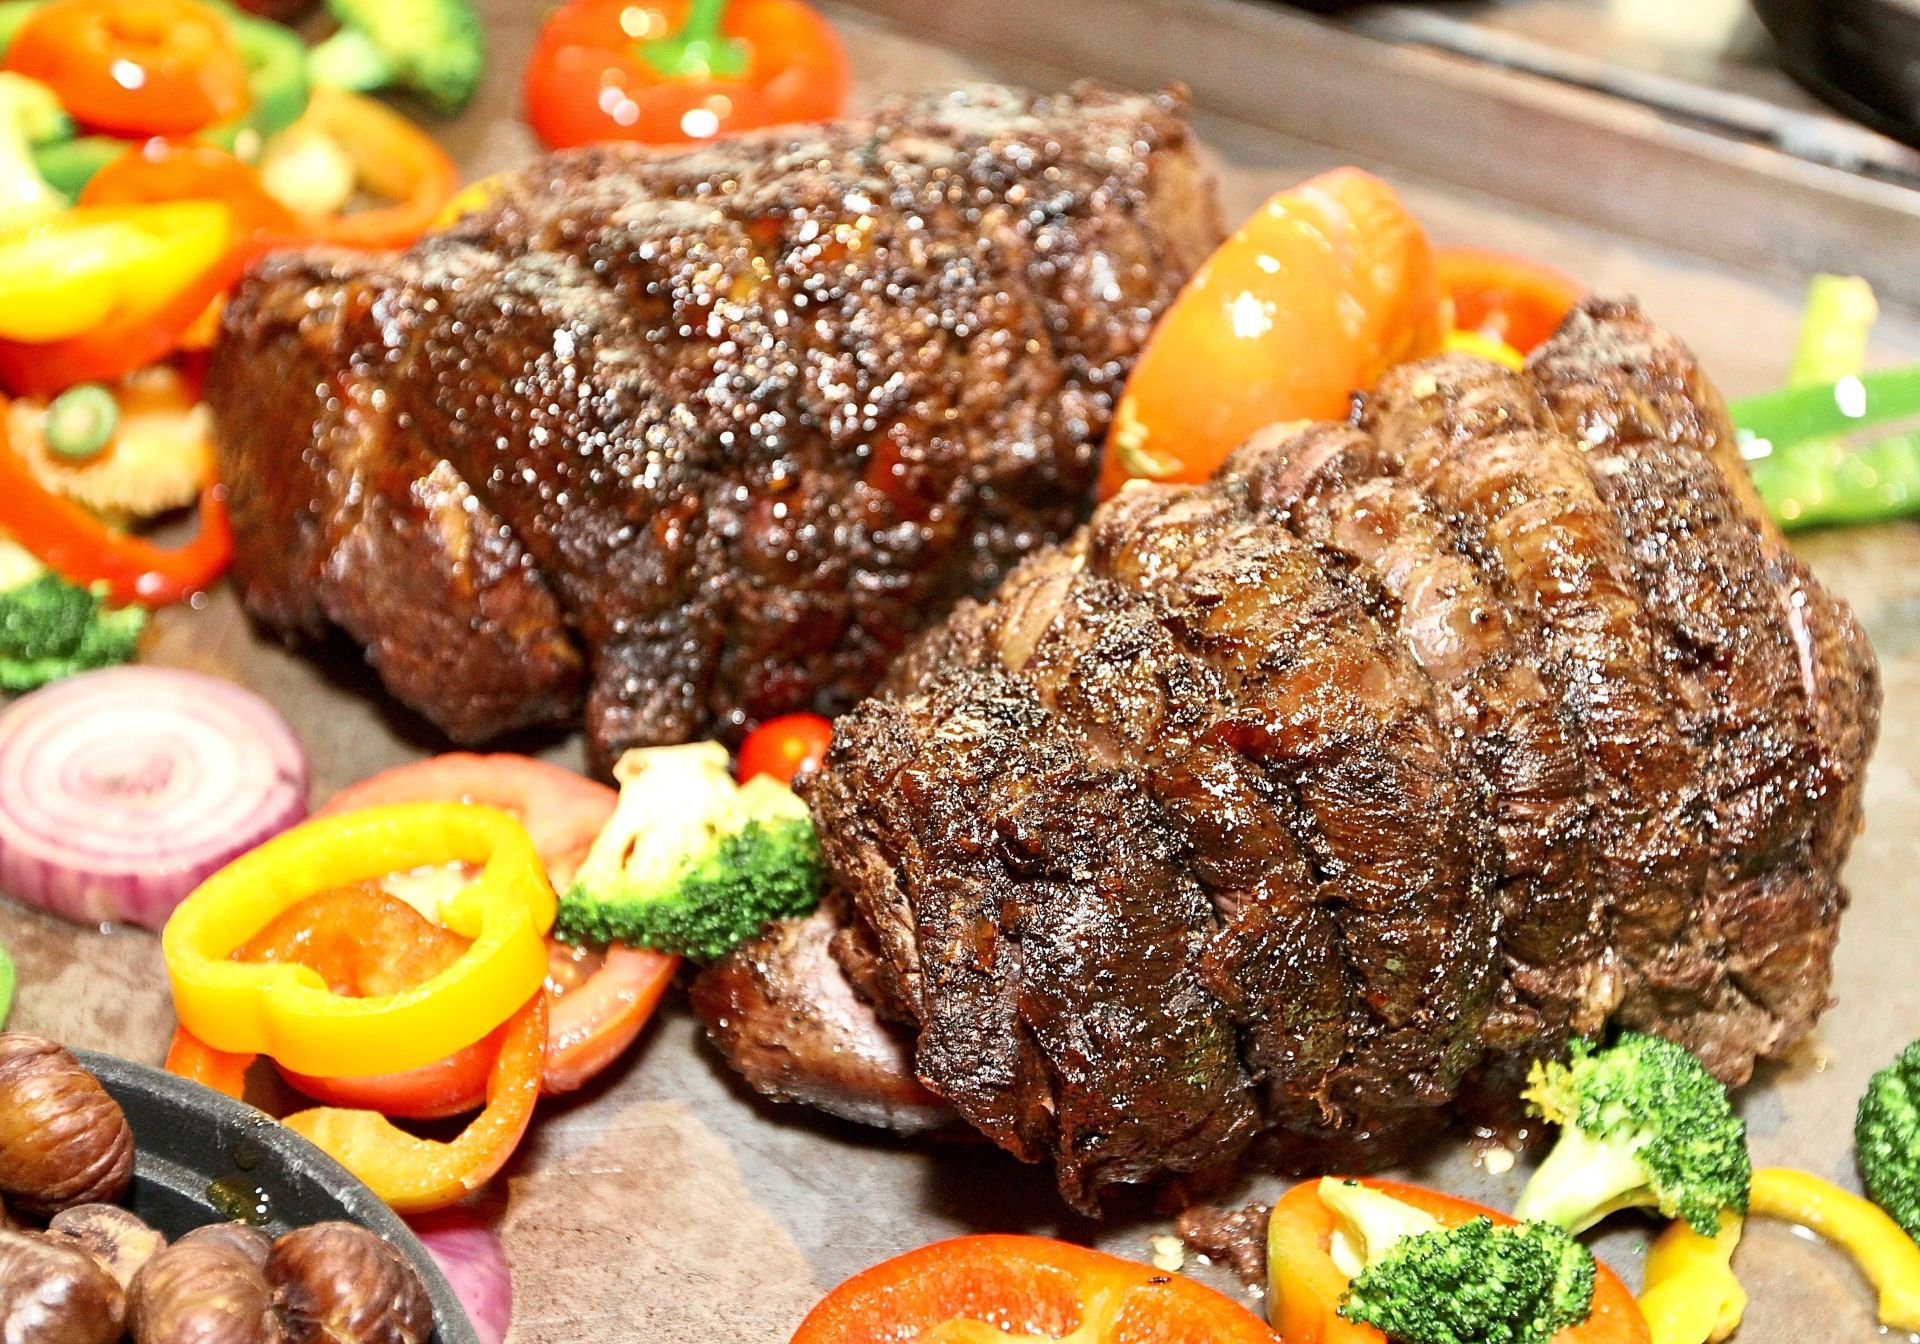 Meat lovers can look forward to oven-baked ribeye at Sunway Putra Hotel Kuala Lumpur's Christmas Eve and New Year's Eve buffet dinner.